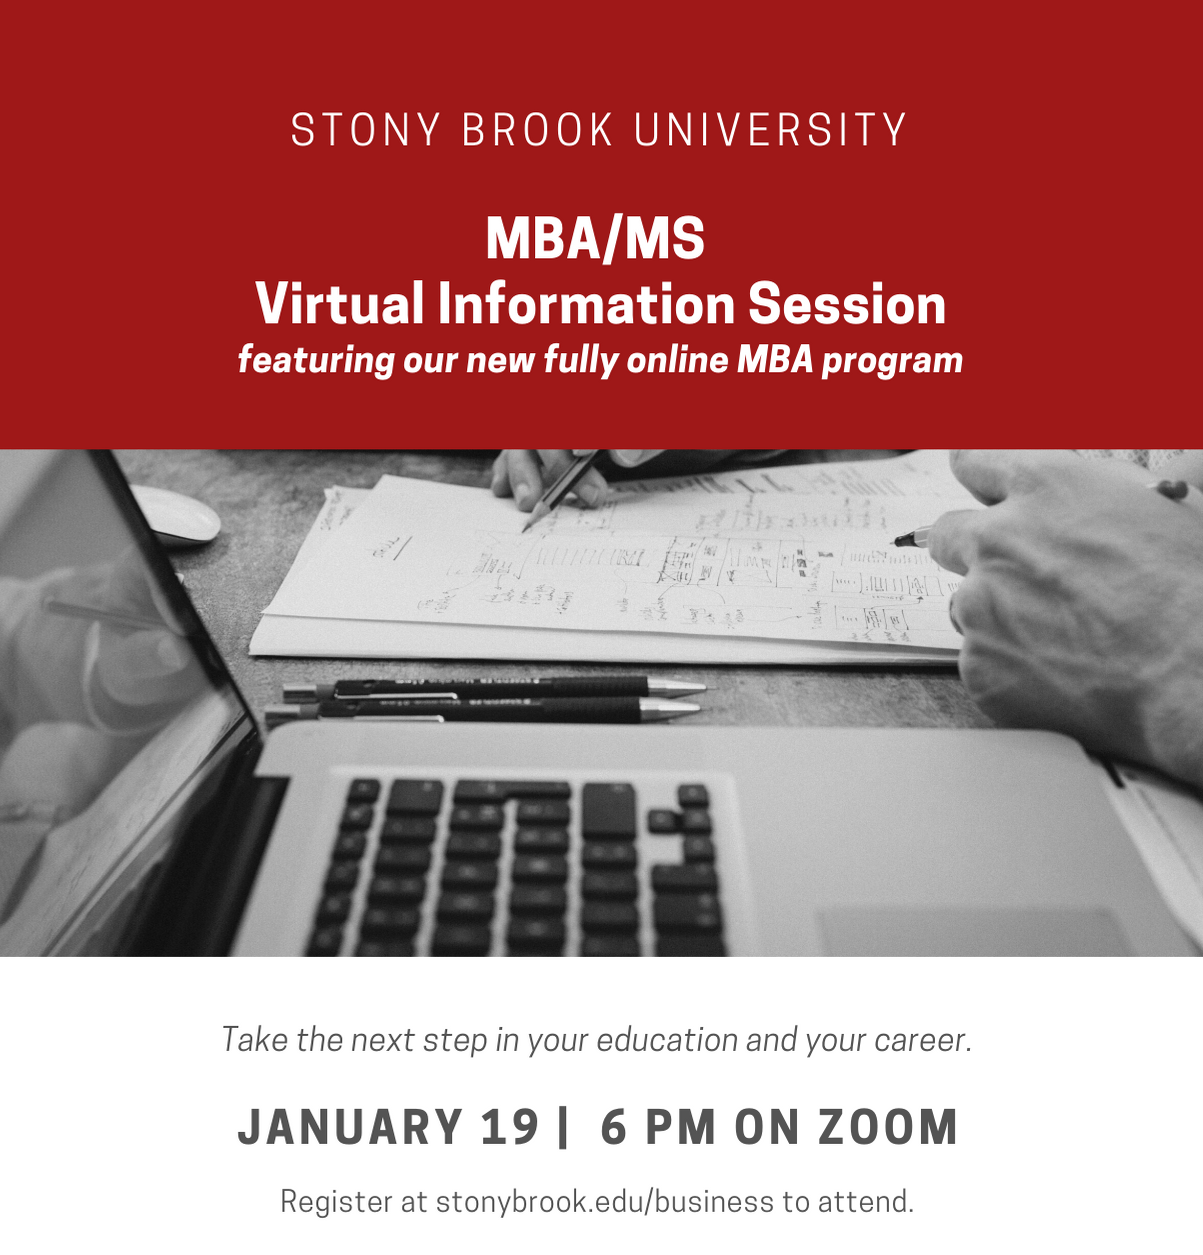 MBA/MS Virtual Information Session January 19 at 6 PM